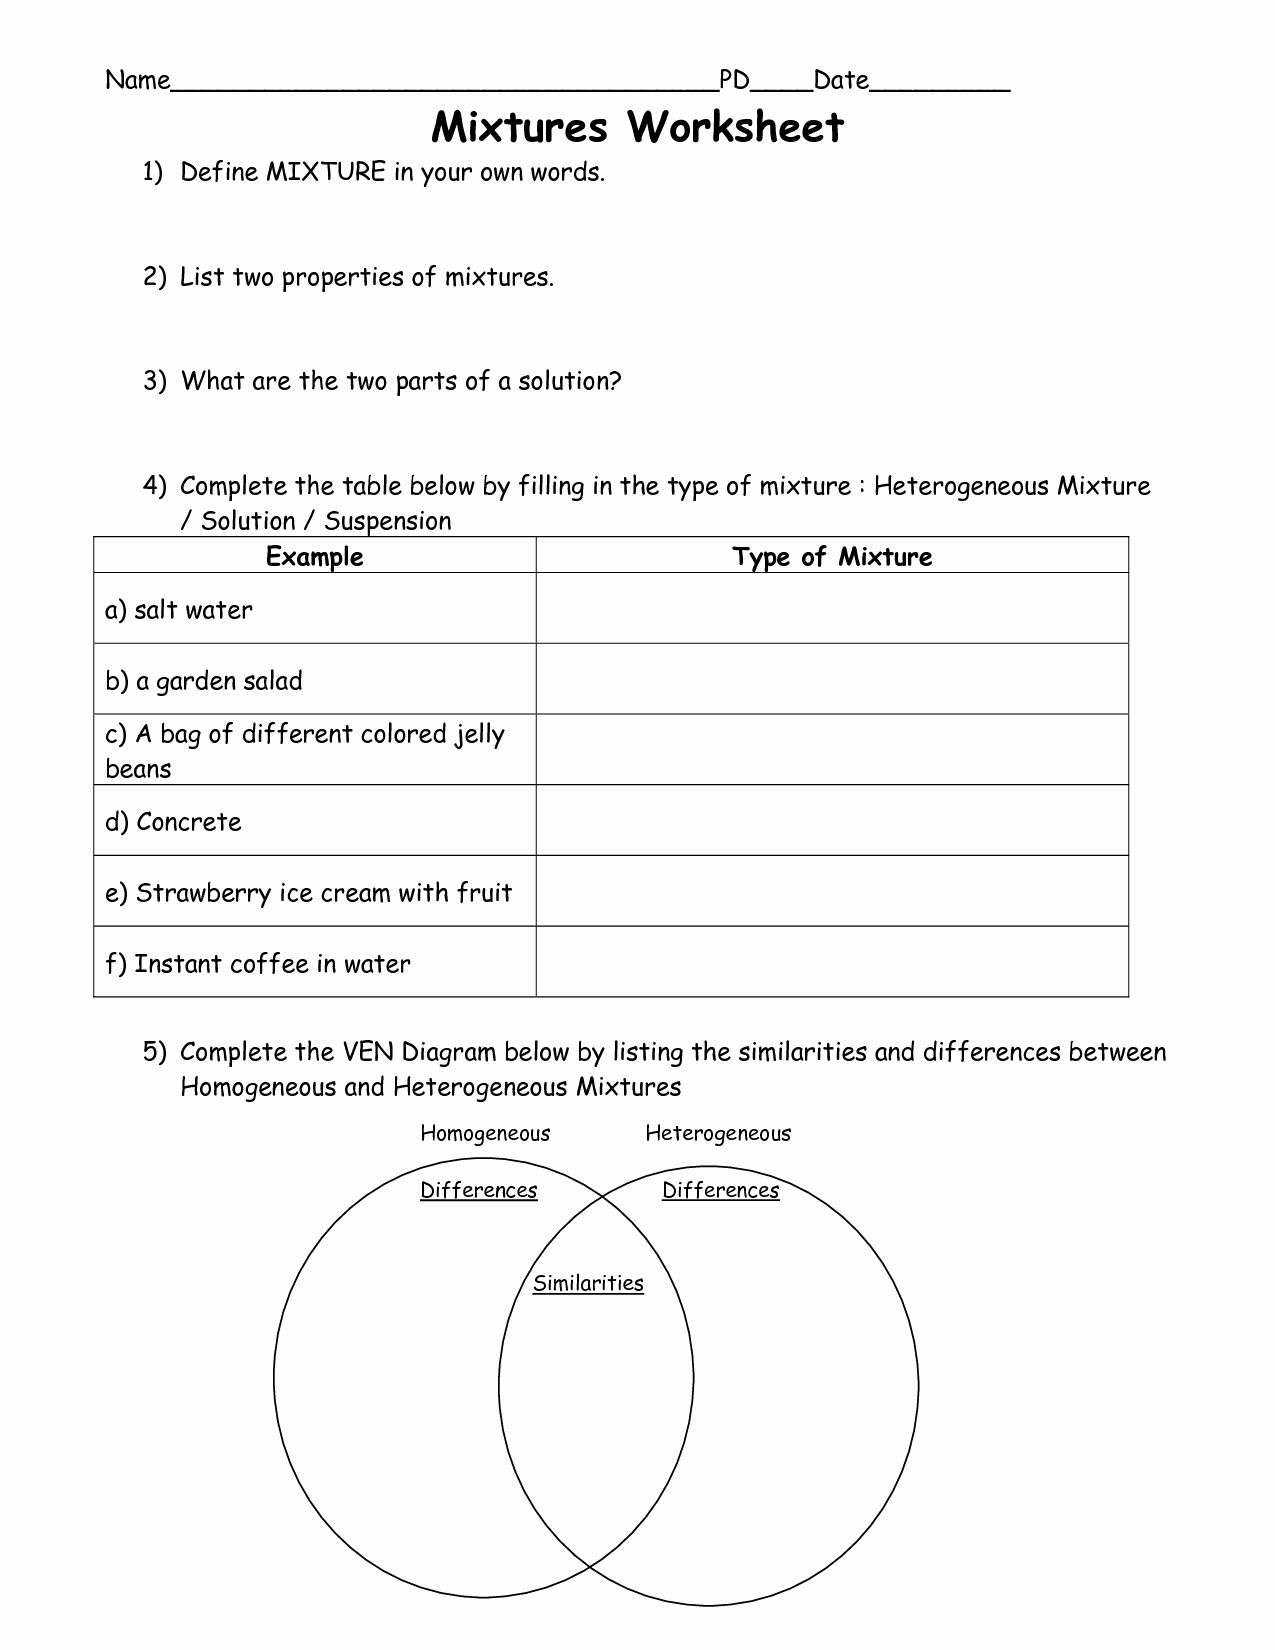 50 Mixtures Worksheet Answer Key In With Images